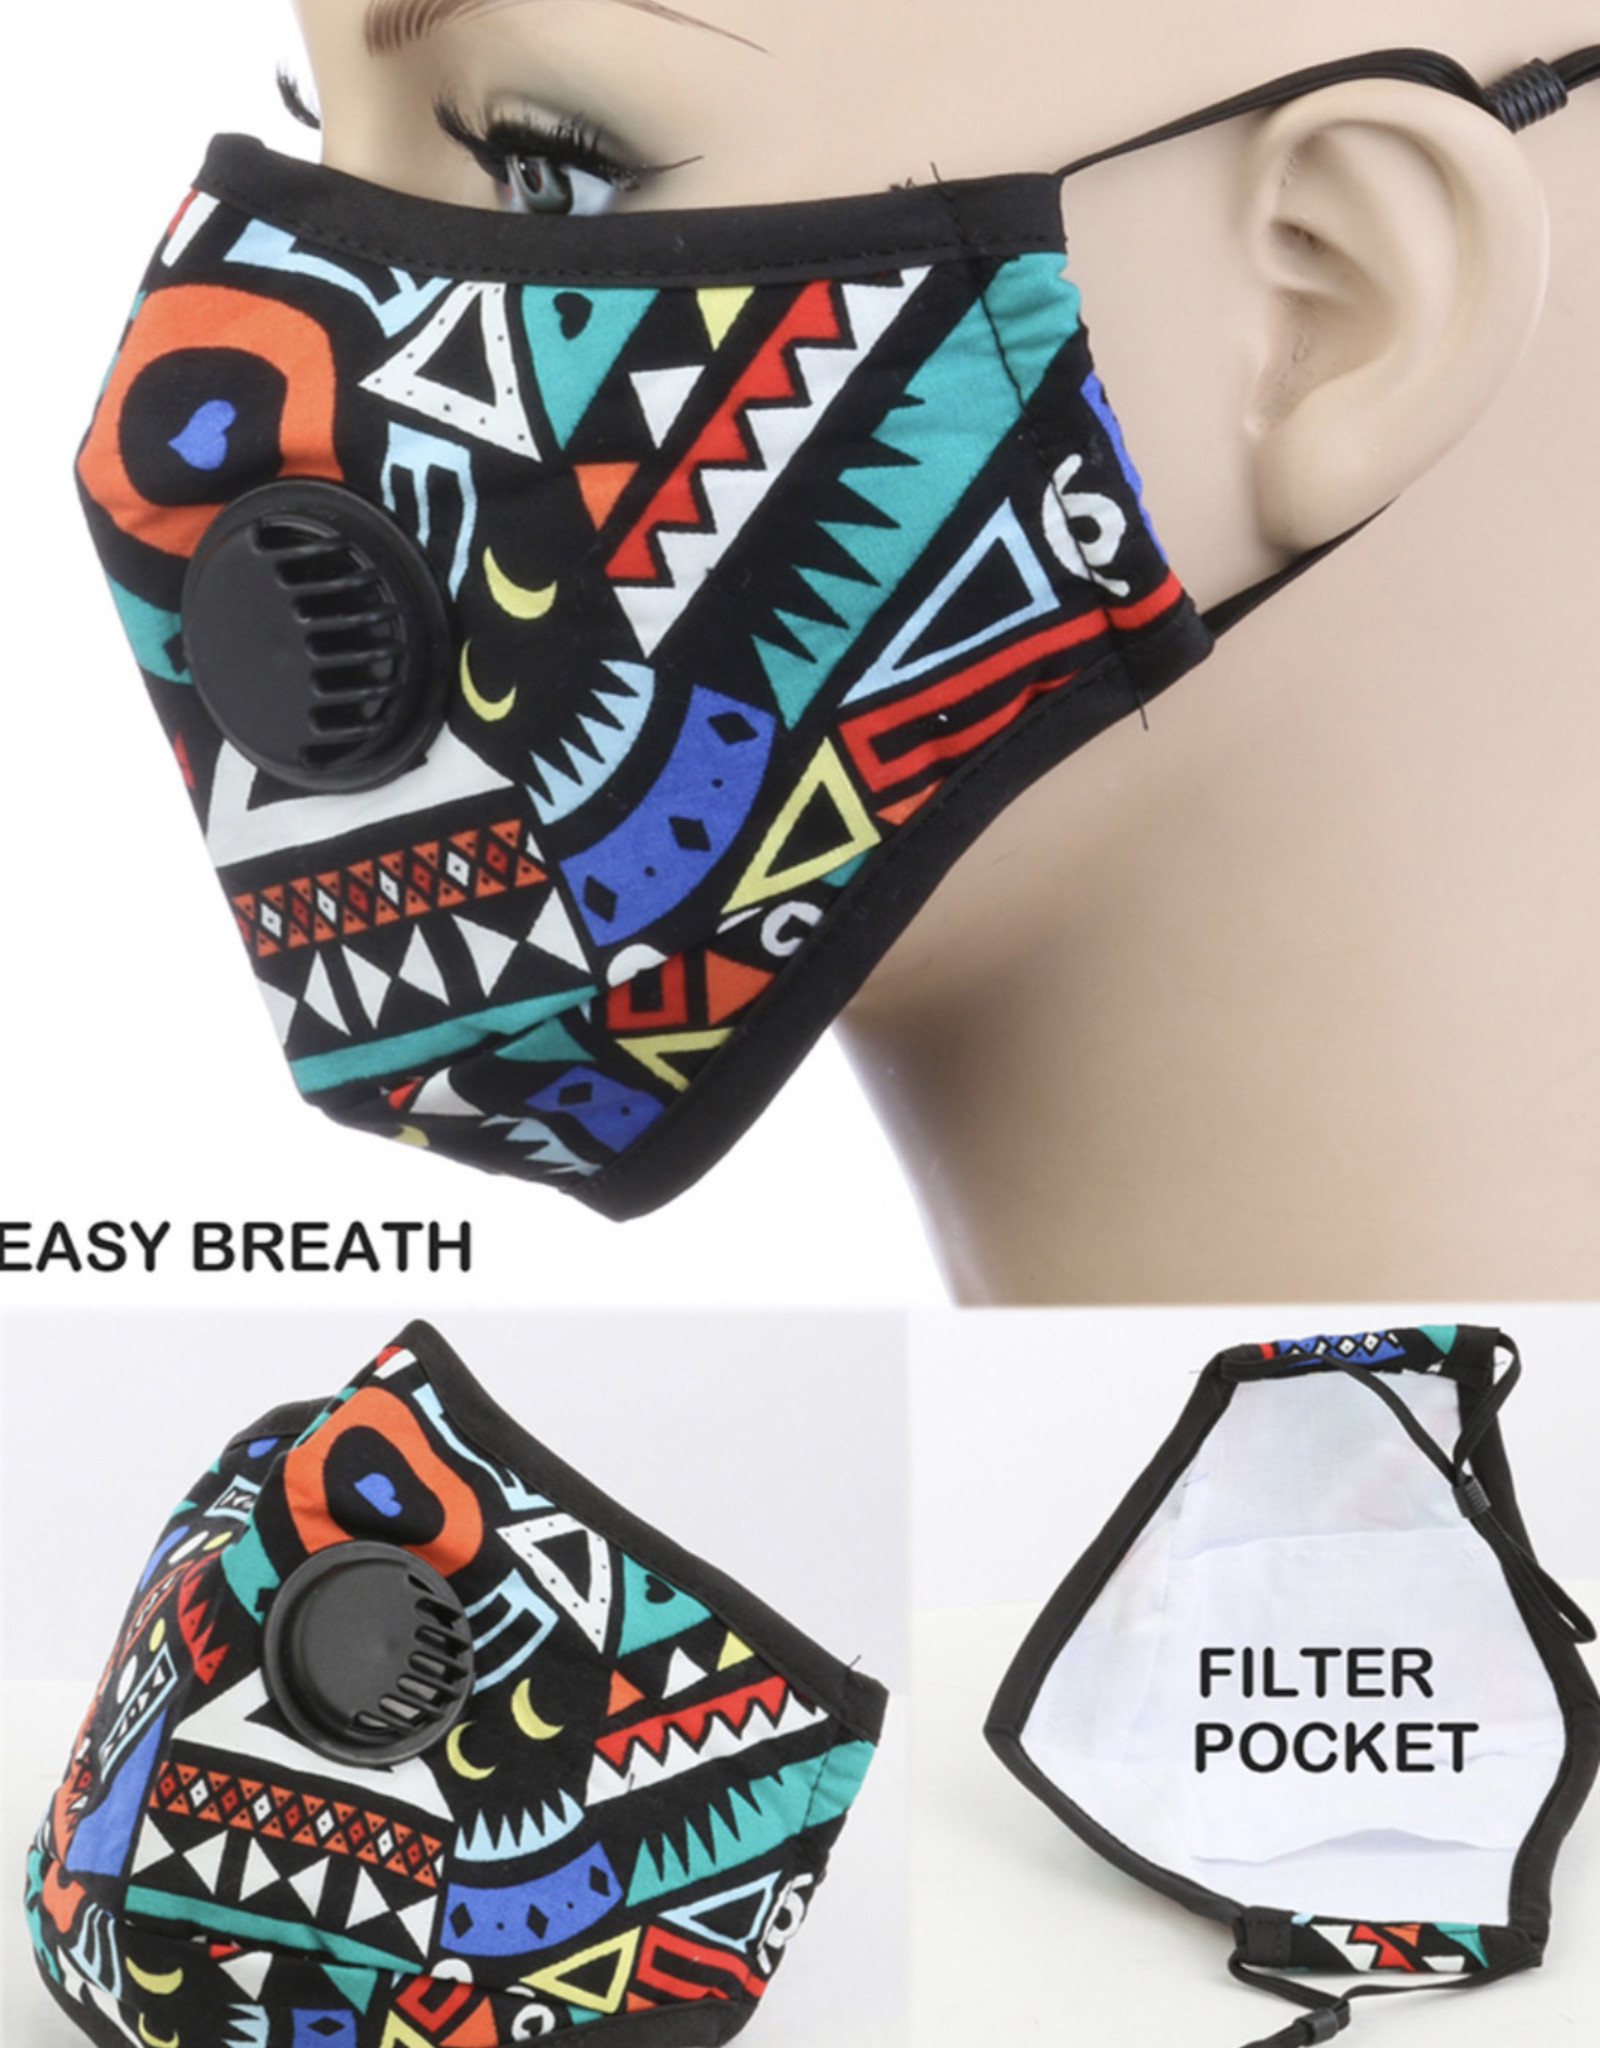 FACE MASK COTTON EZ BREATHE RESPIRATOR W/ FILTER POCKET RED GEOMETRIC